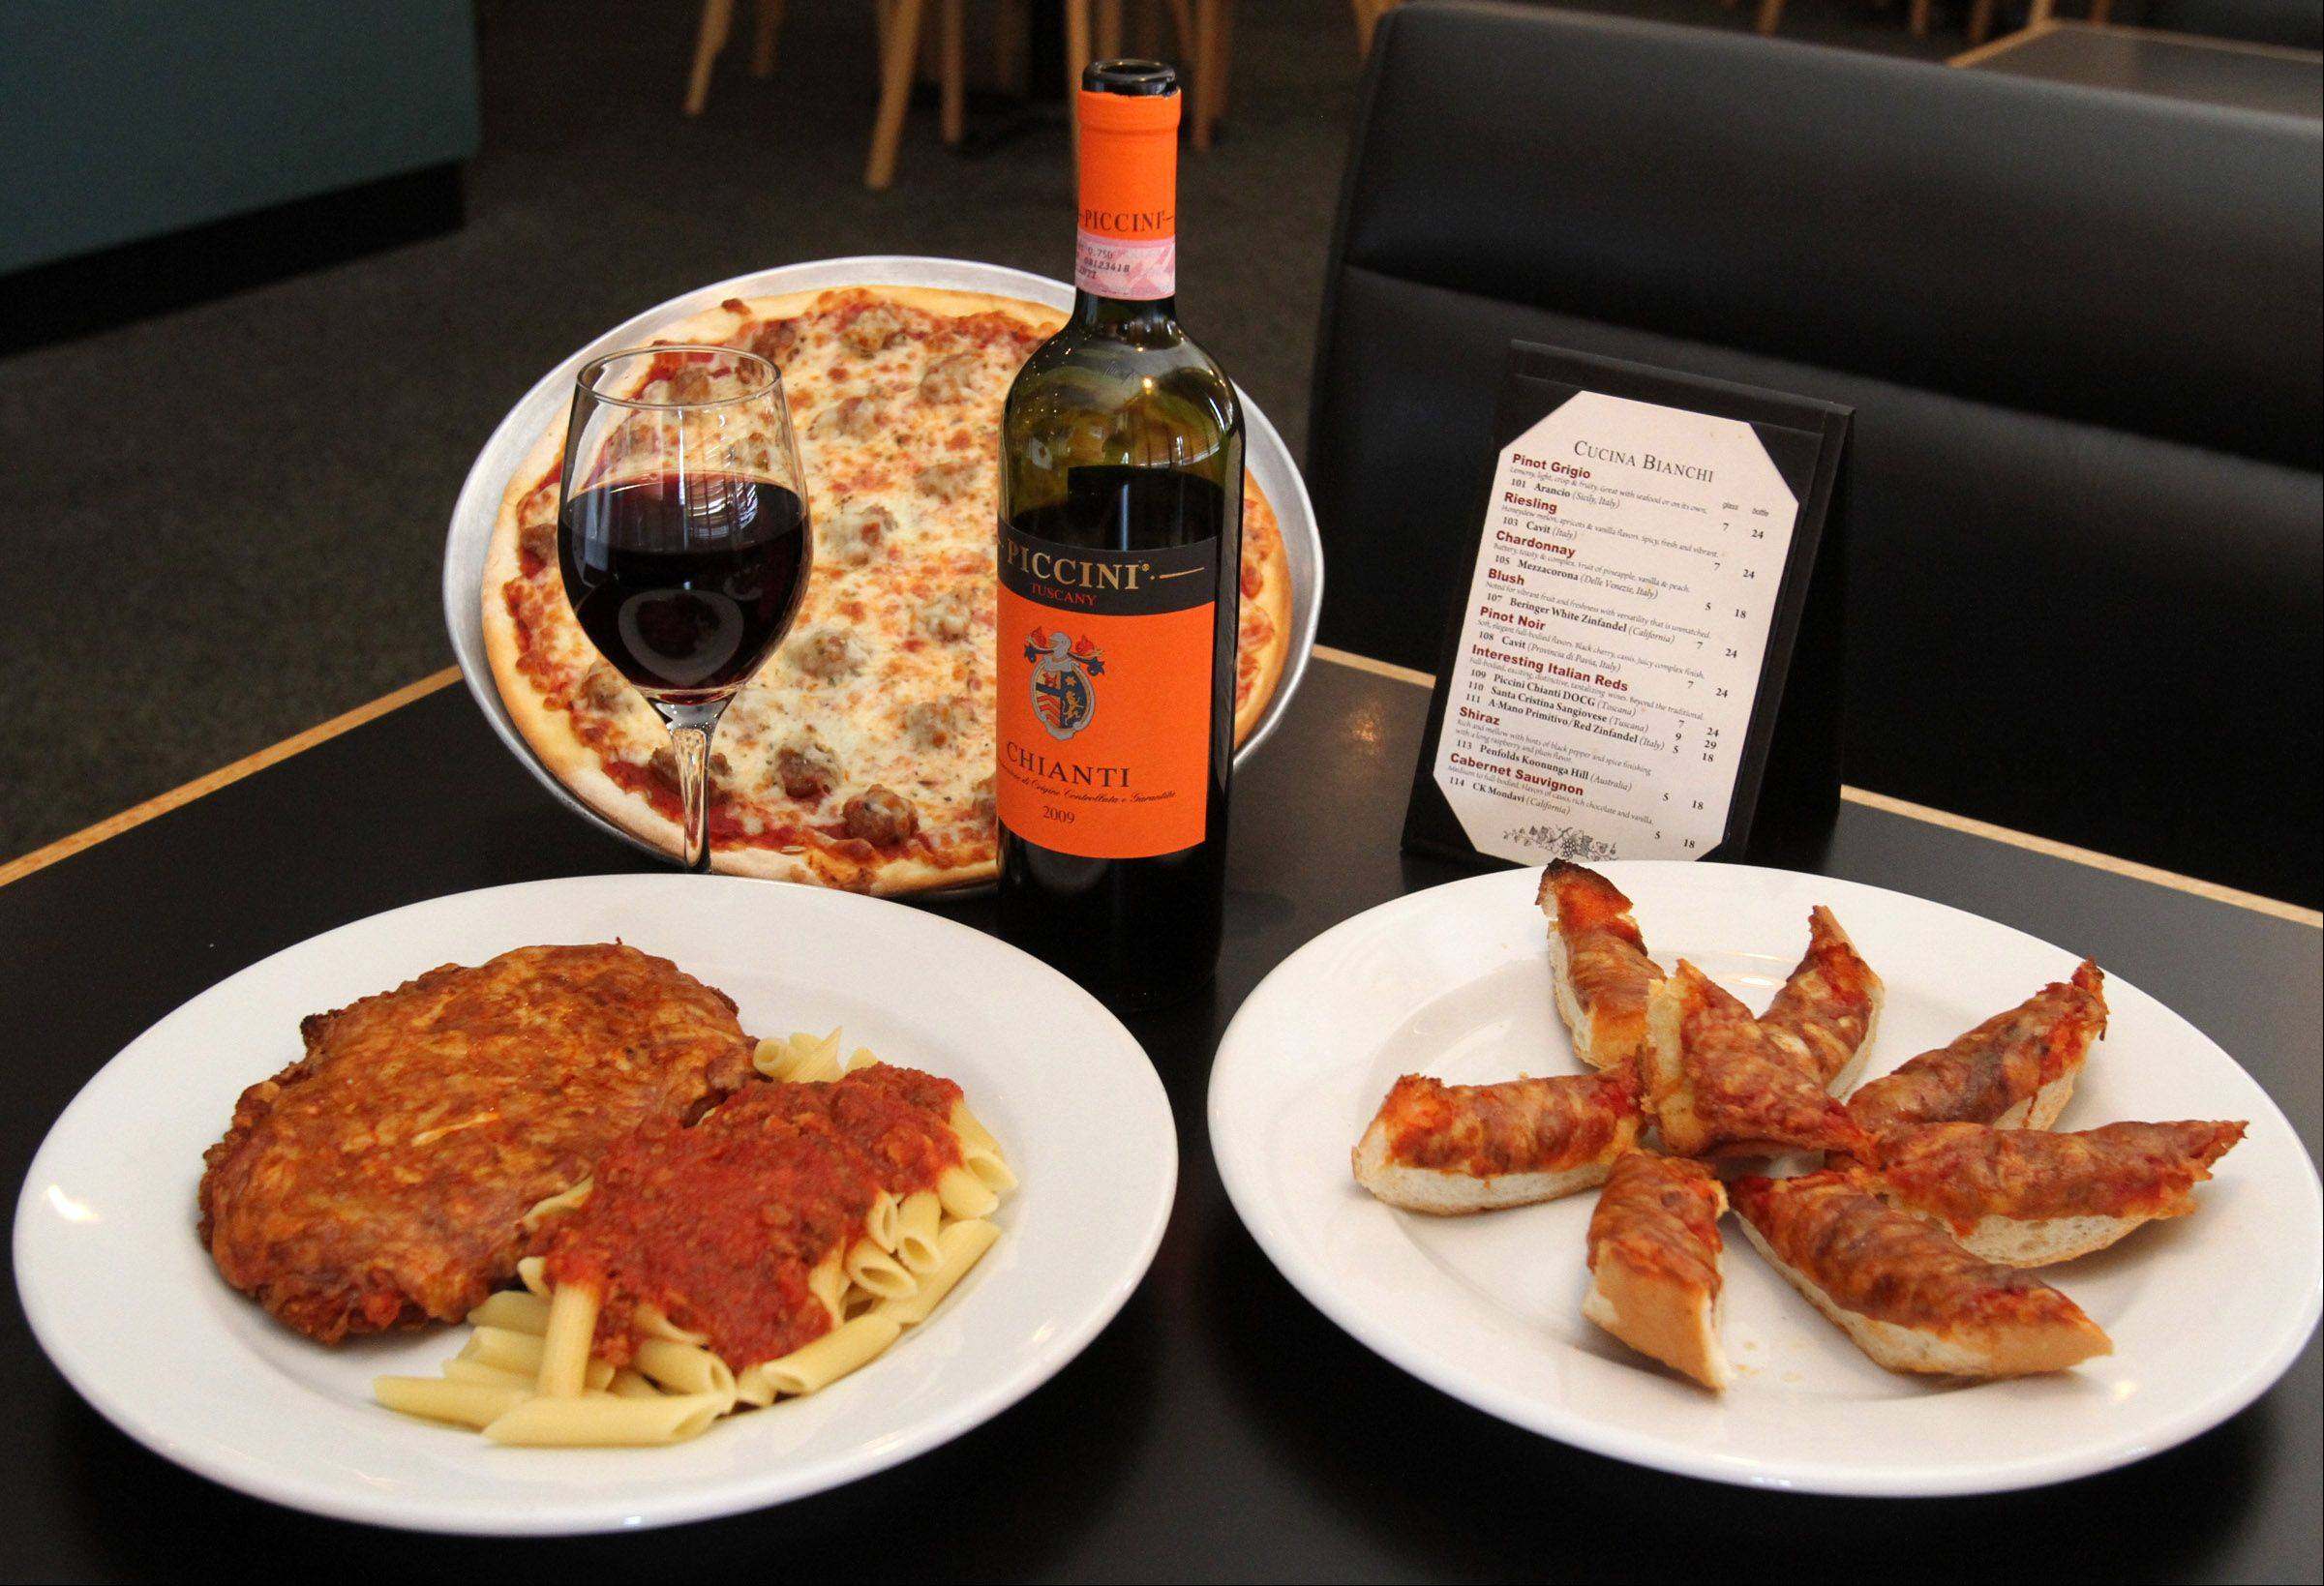 Generous portions of Italian family favorite like pizza bread, chicken parmesan, and sausage pizza are served at Cucina Bianchi Ristorante and Pizzeria in Elk Grove Village.